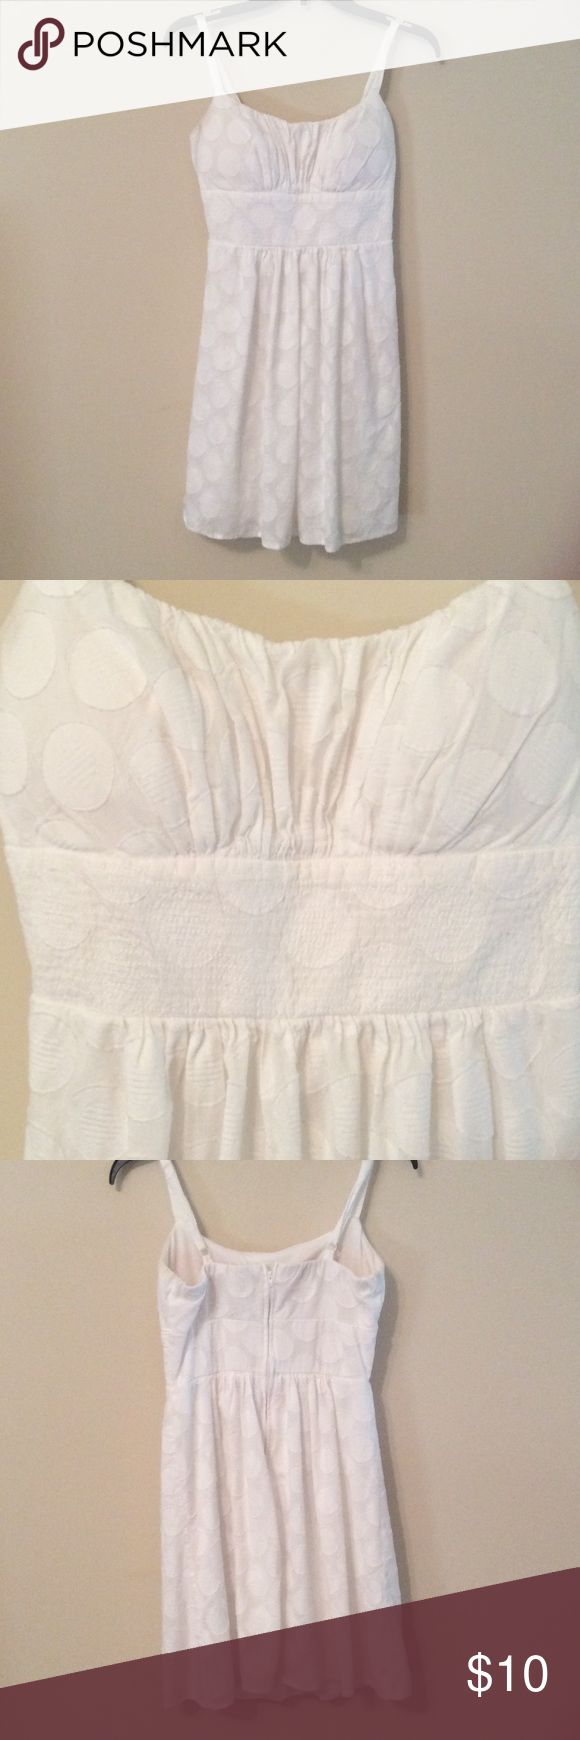 White Polka Dot Dress Gently used. Perfect for spring or summer. 100% Cotton, Lining 100% Polyester. B. Smart Dresses